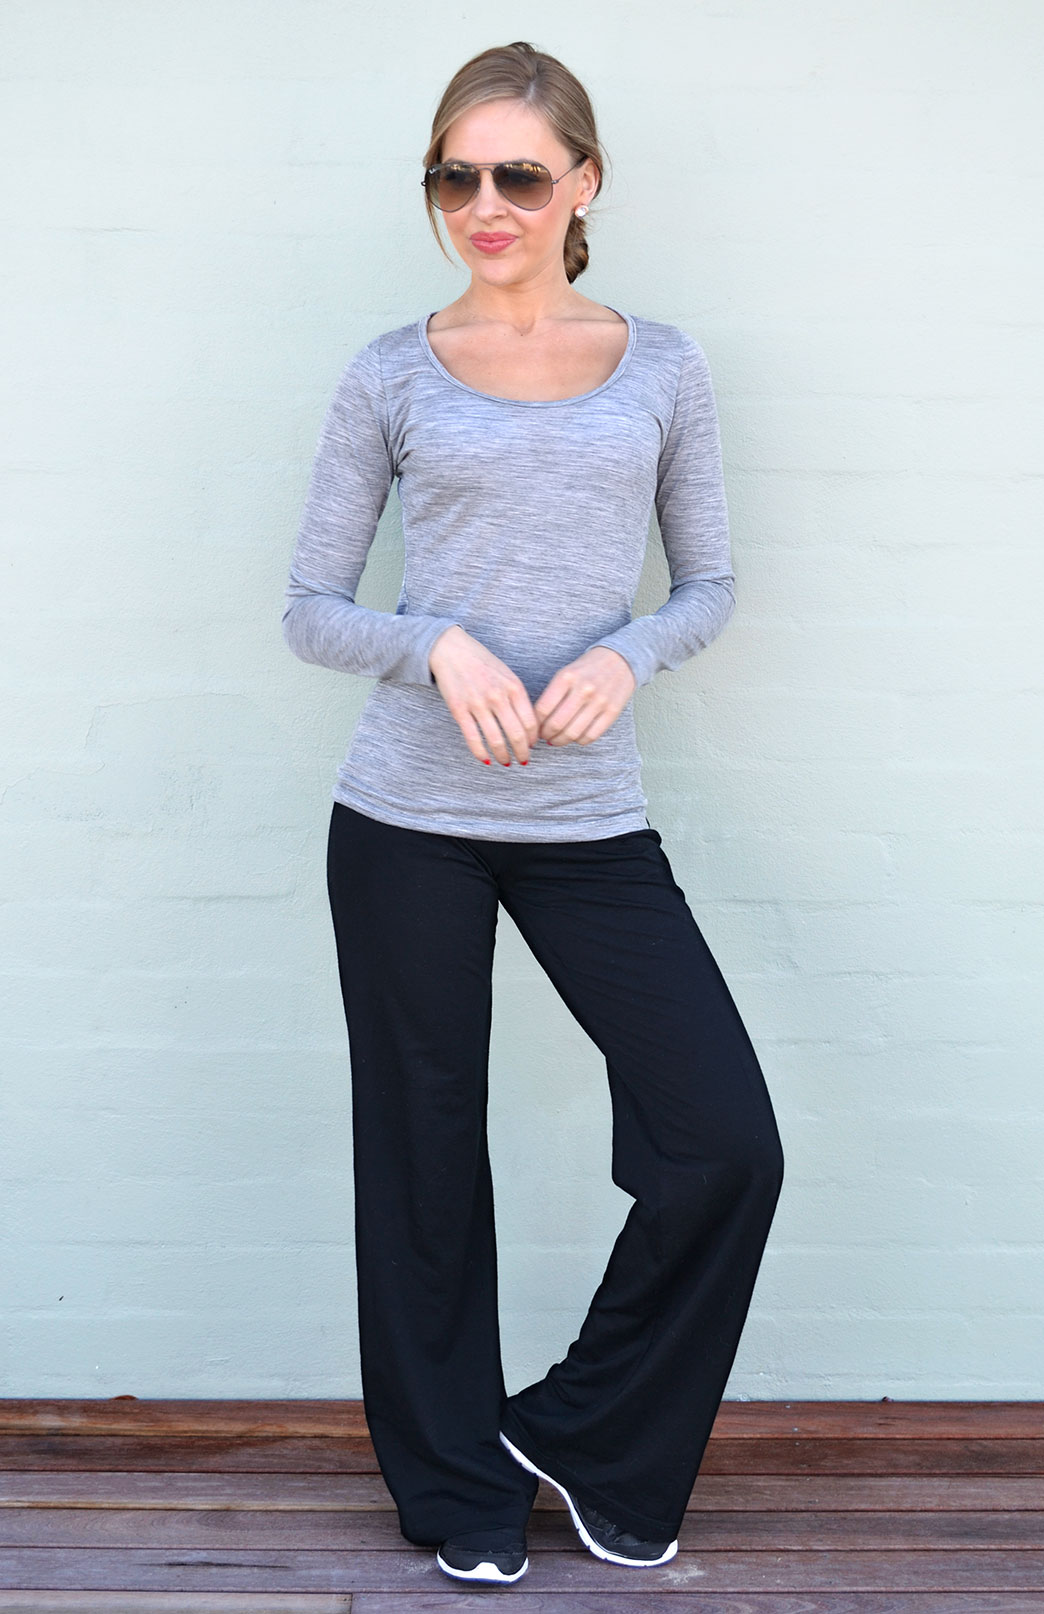 Yoga Pants - Fleece - Women's Black Wool Fleece Lined Yoga Pants with wide waistband - Smitten Merino Tasmania Australia